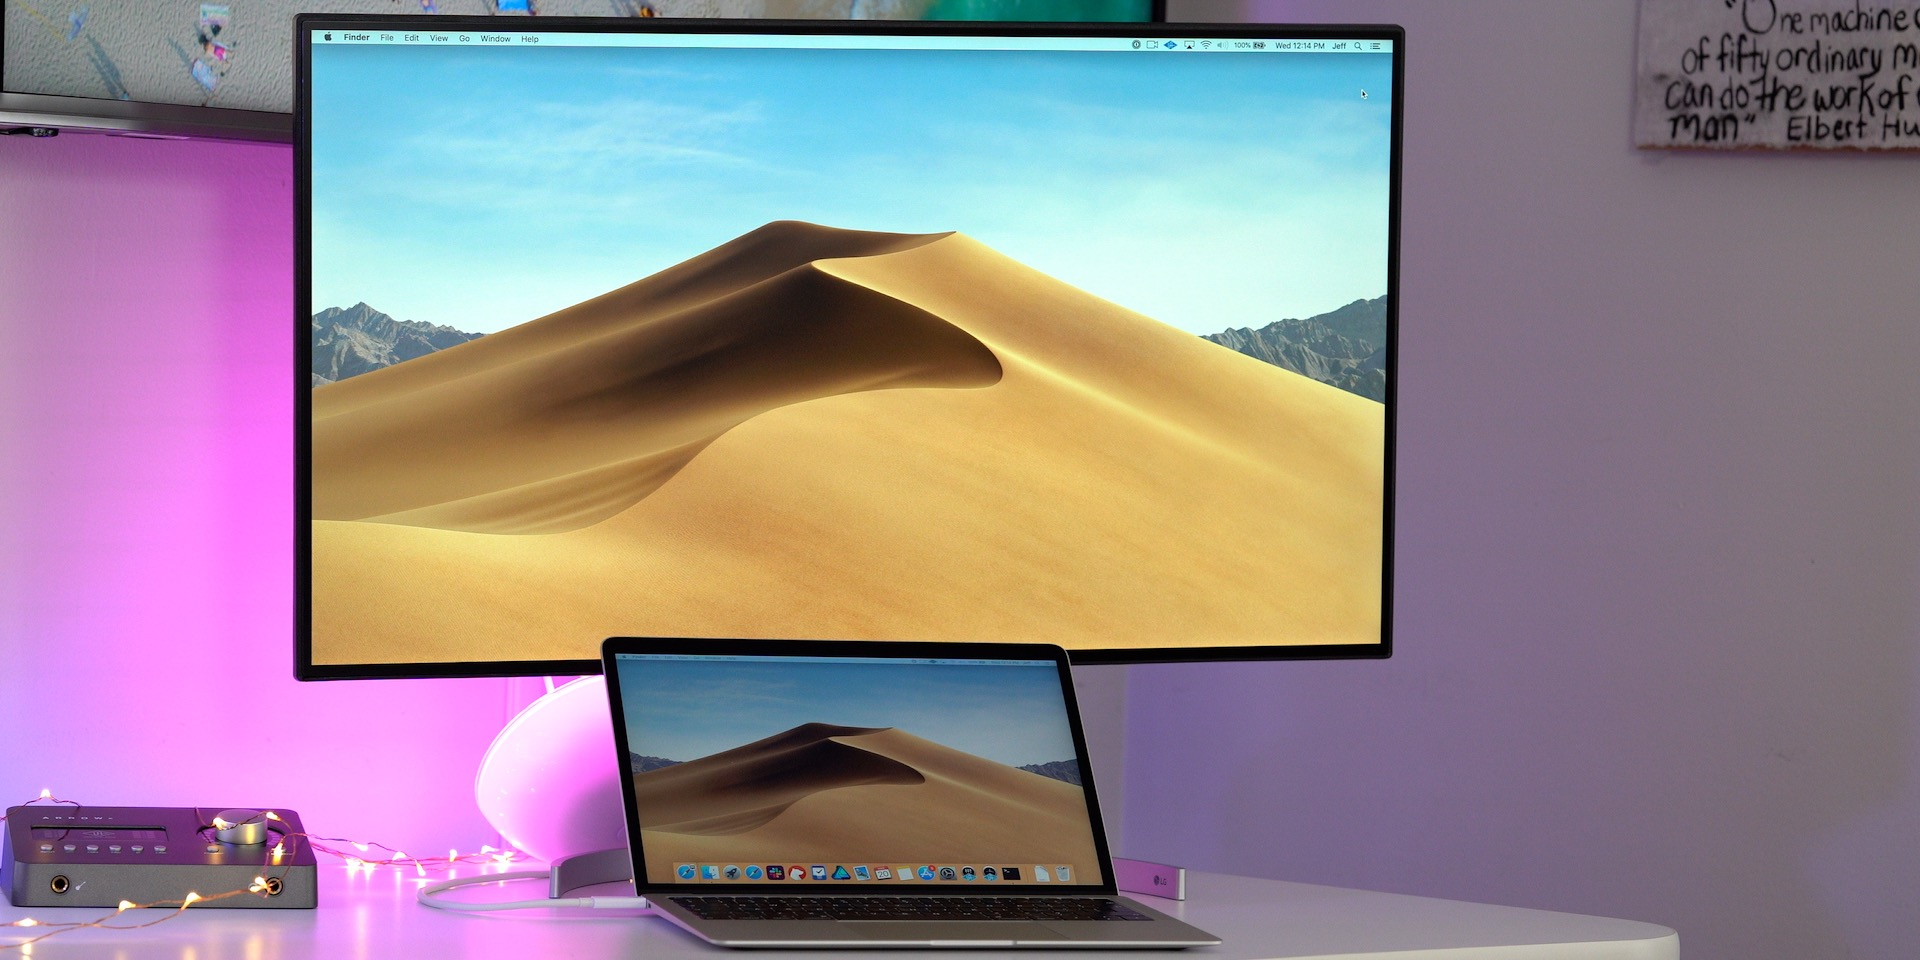 LG 32UL950 UltraFine 4K Display Review 01